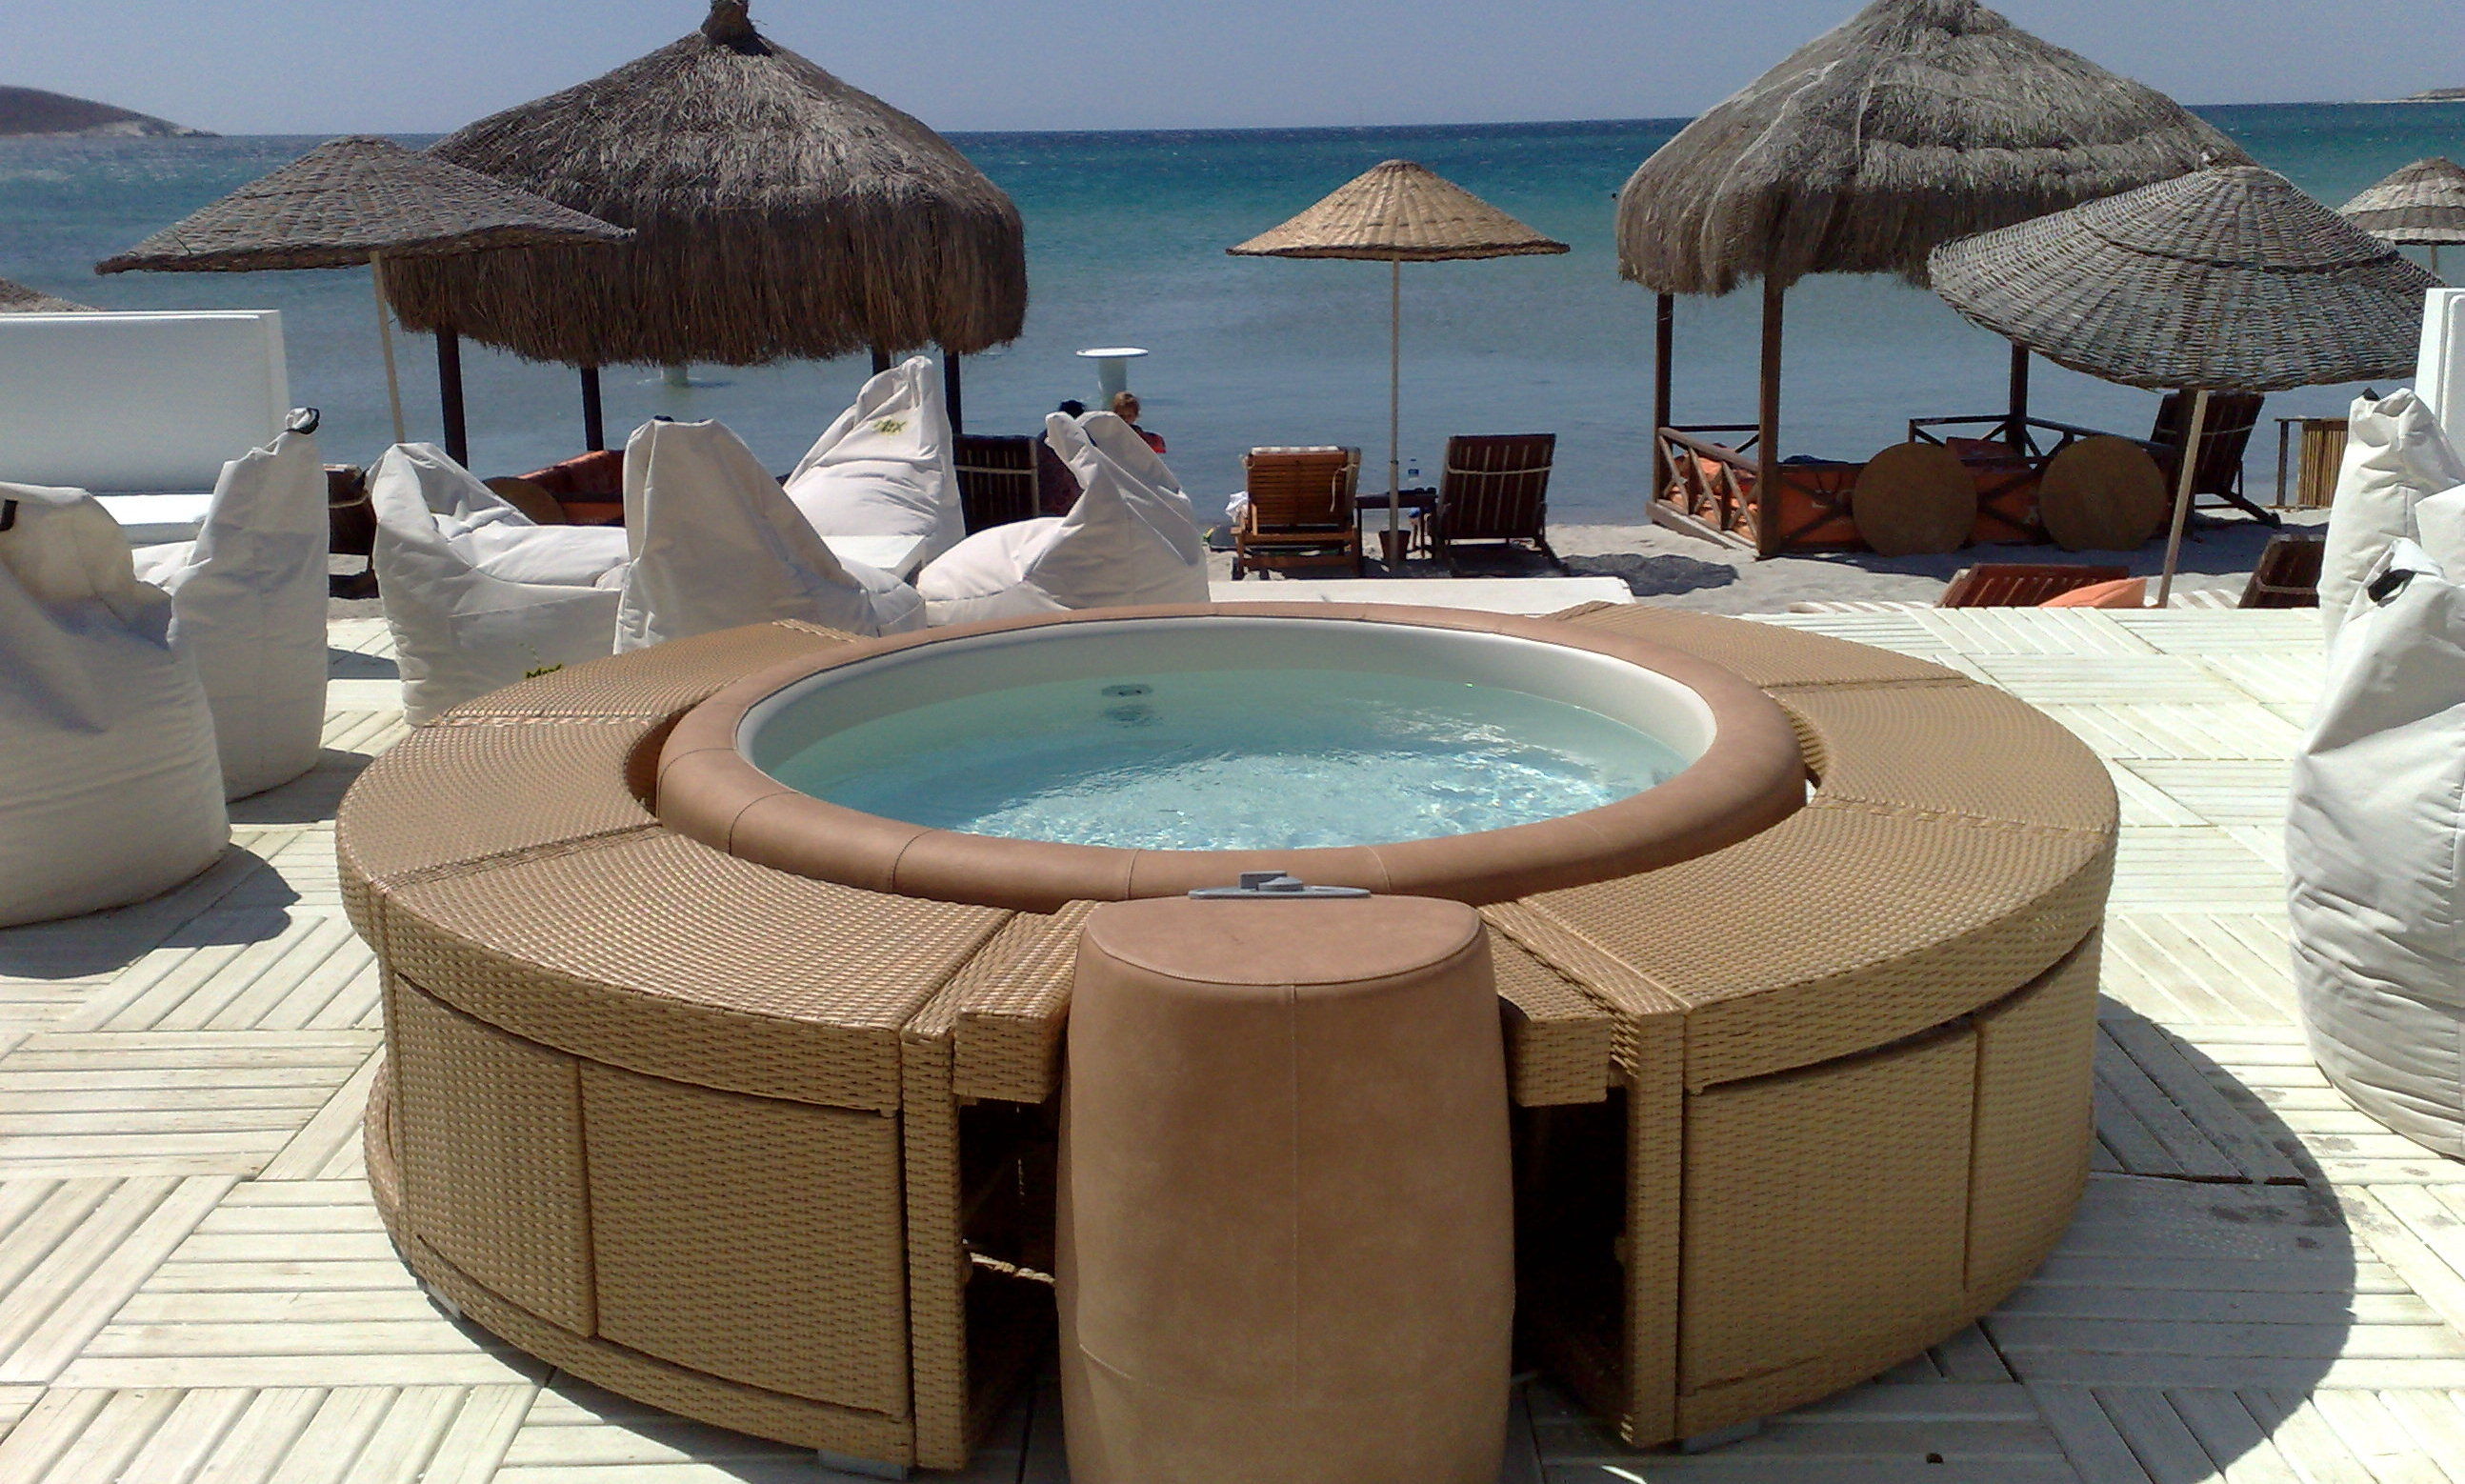 hot tub our know loves and calais billiards we customers spas enclosures home soft pinterest privacy the ideas side covana tubs pin